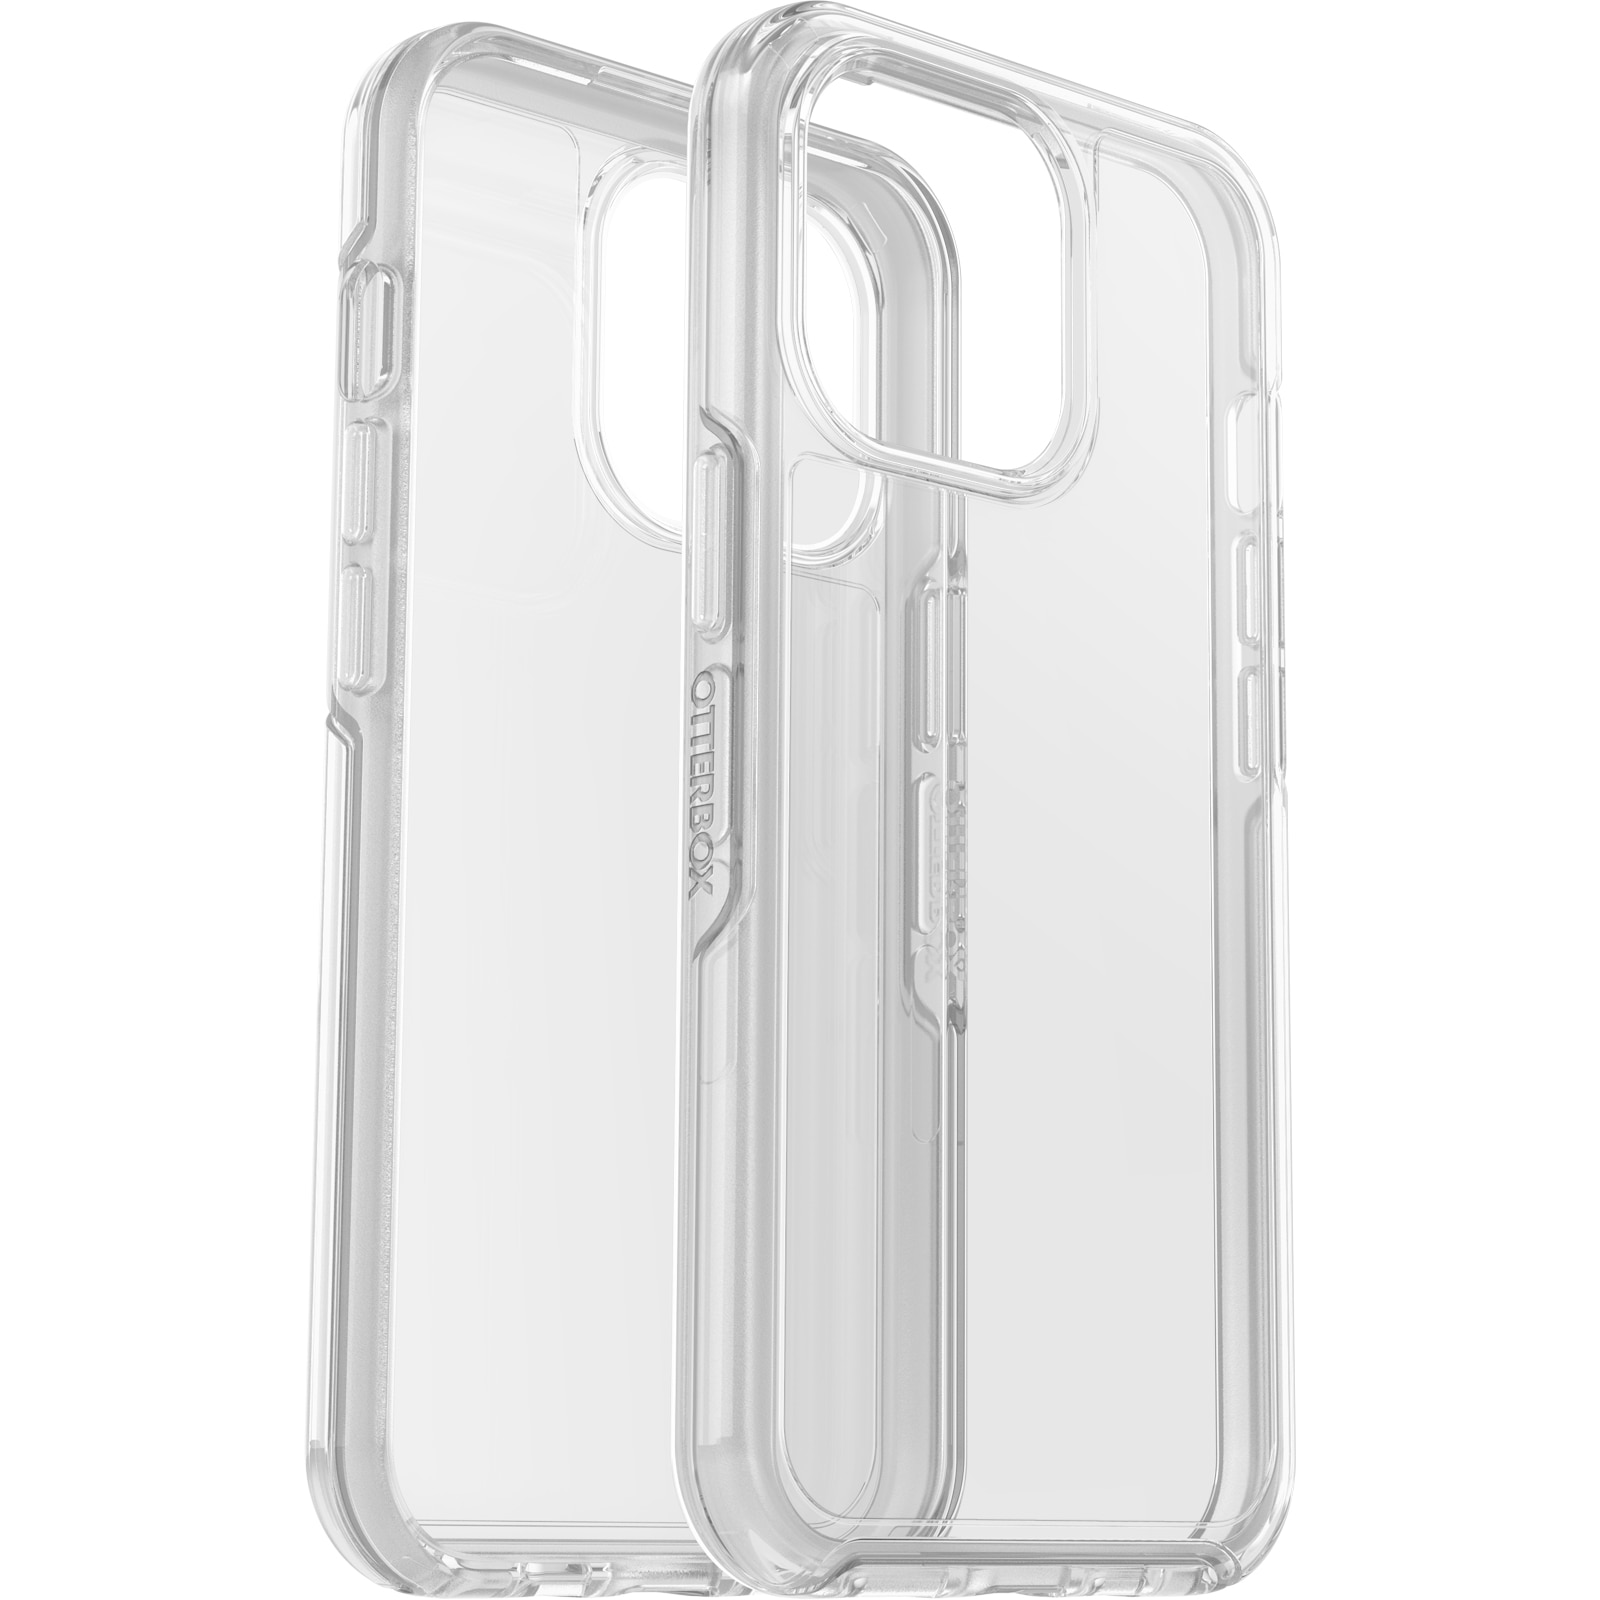 Symmetry Case iPhone 13 Pro Max Clear